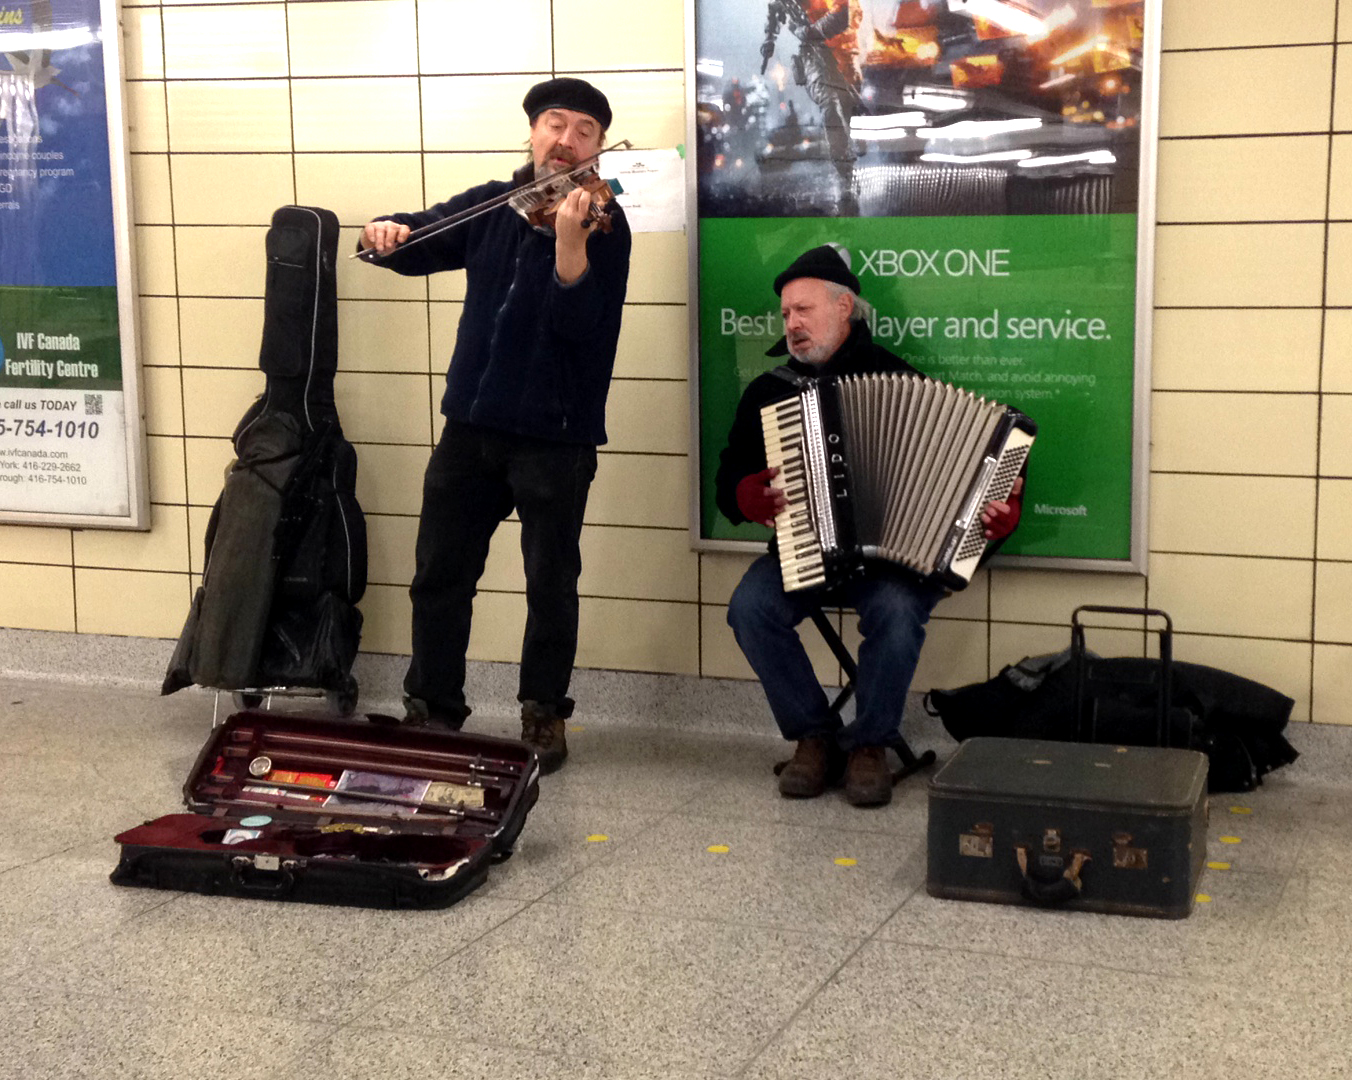 Andrei and Andre playing Violin and Accordian in the subway station